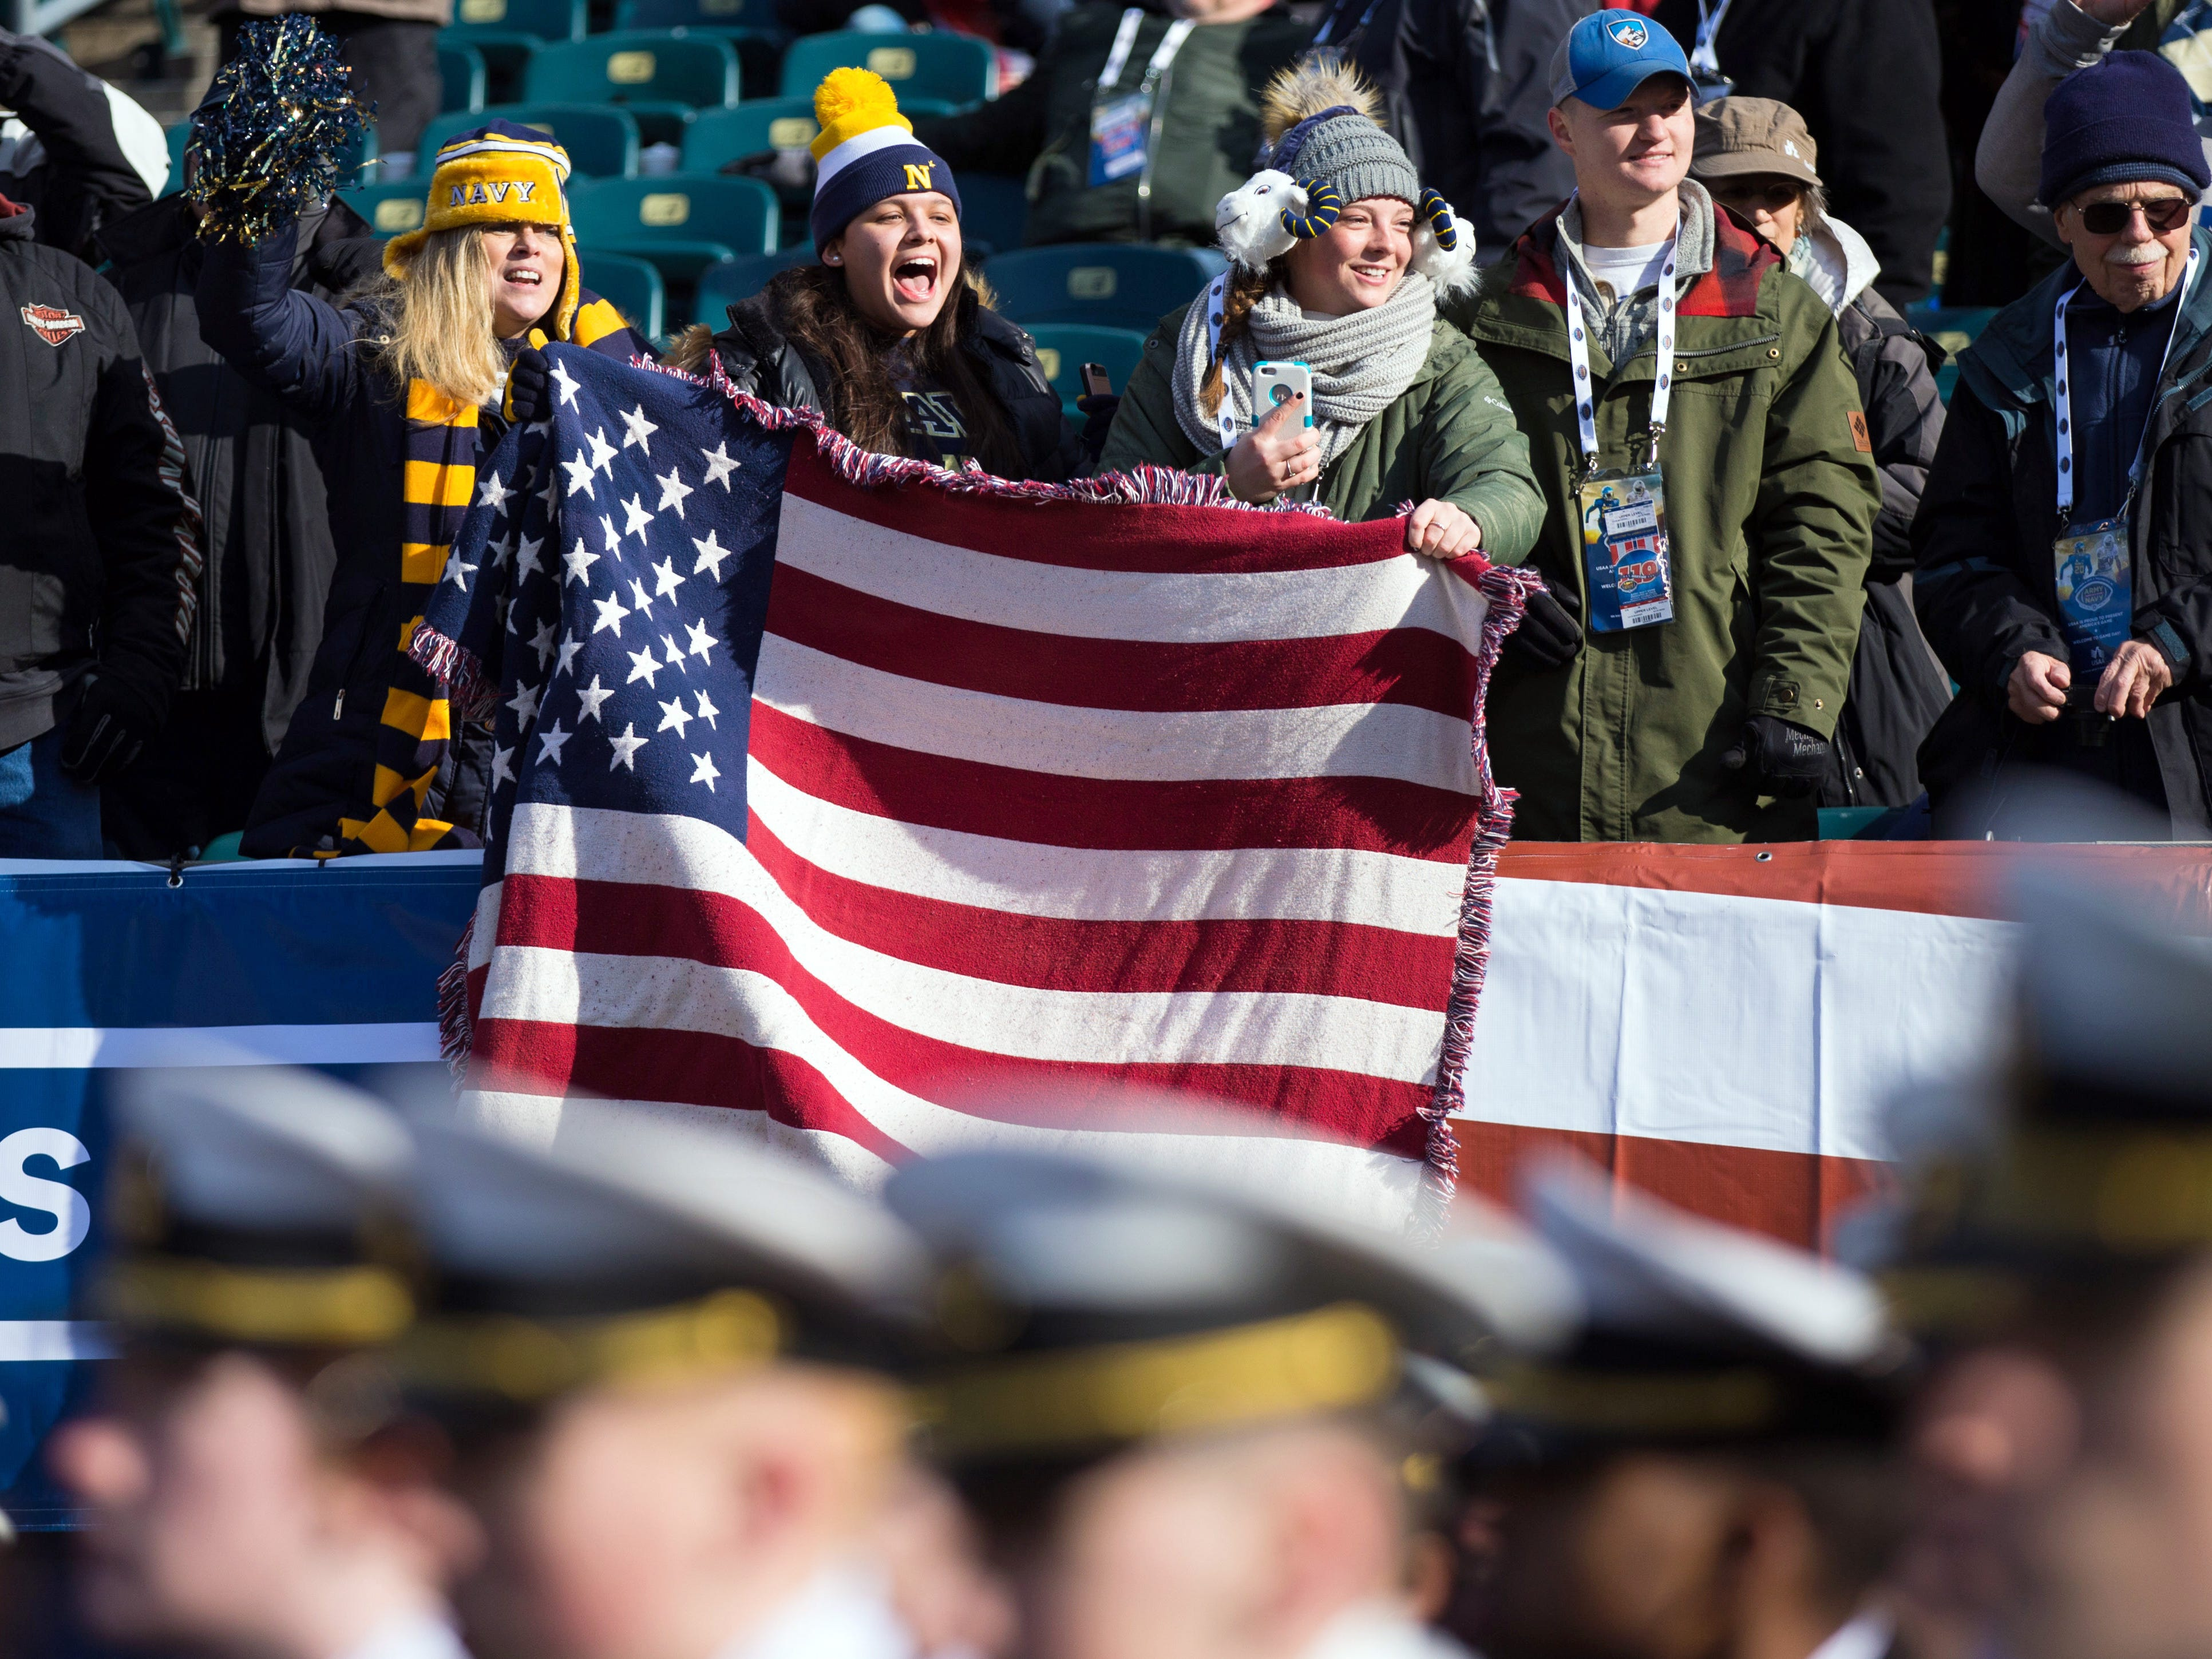 Navy fans cheer on as Navy Midshipmen march off the field.